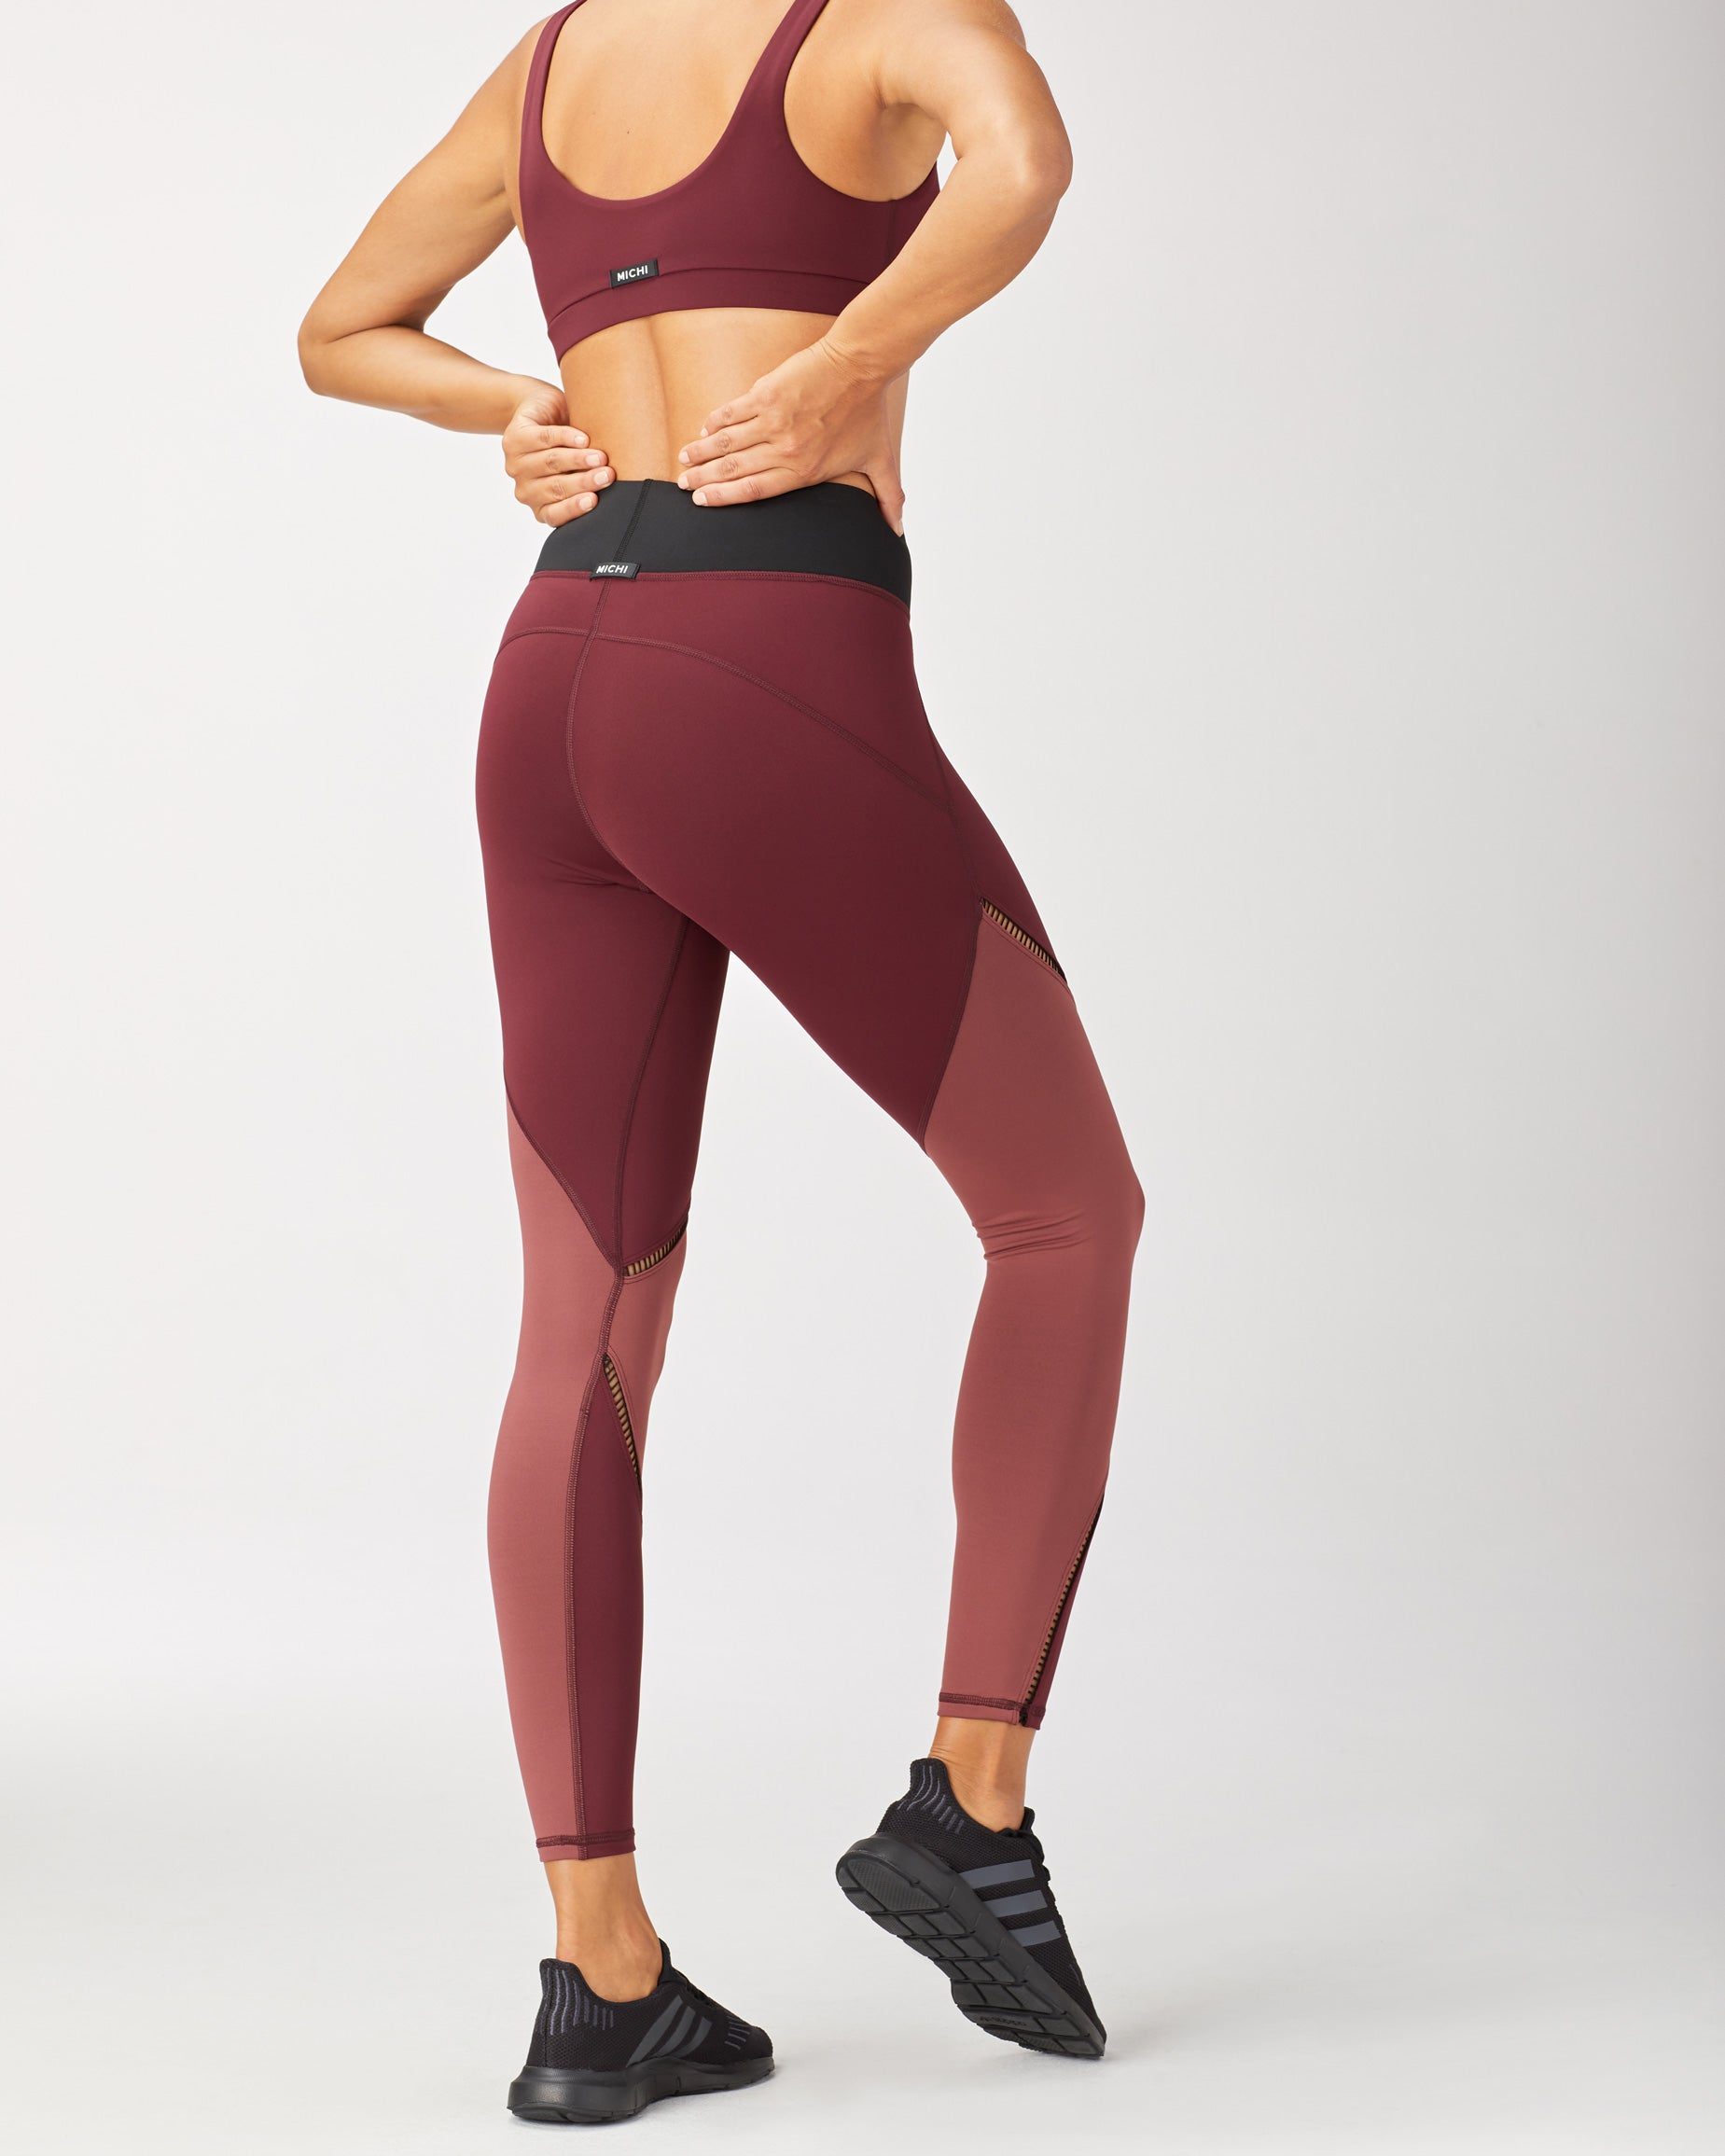 Axial Legging - Wine/Spice